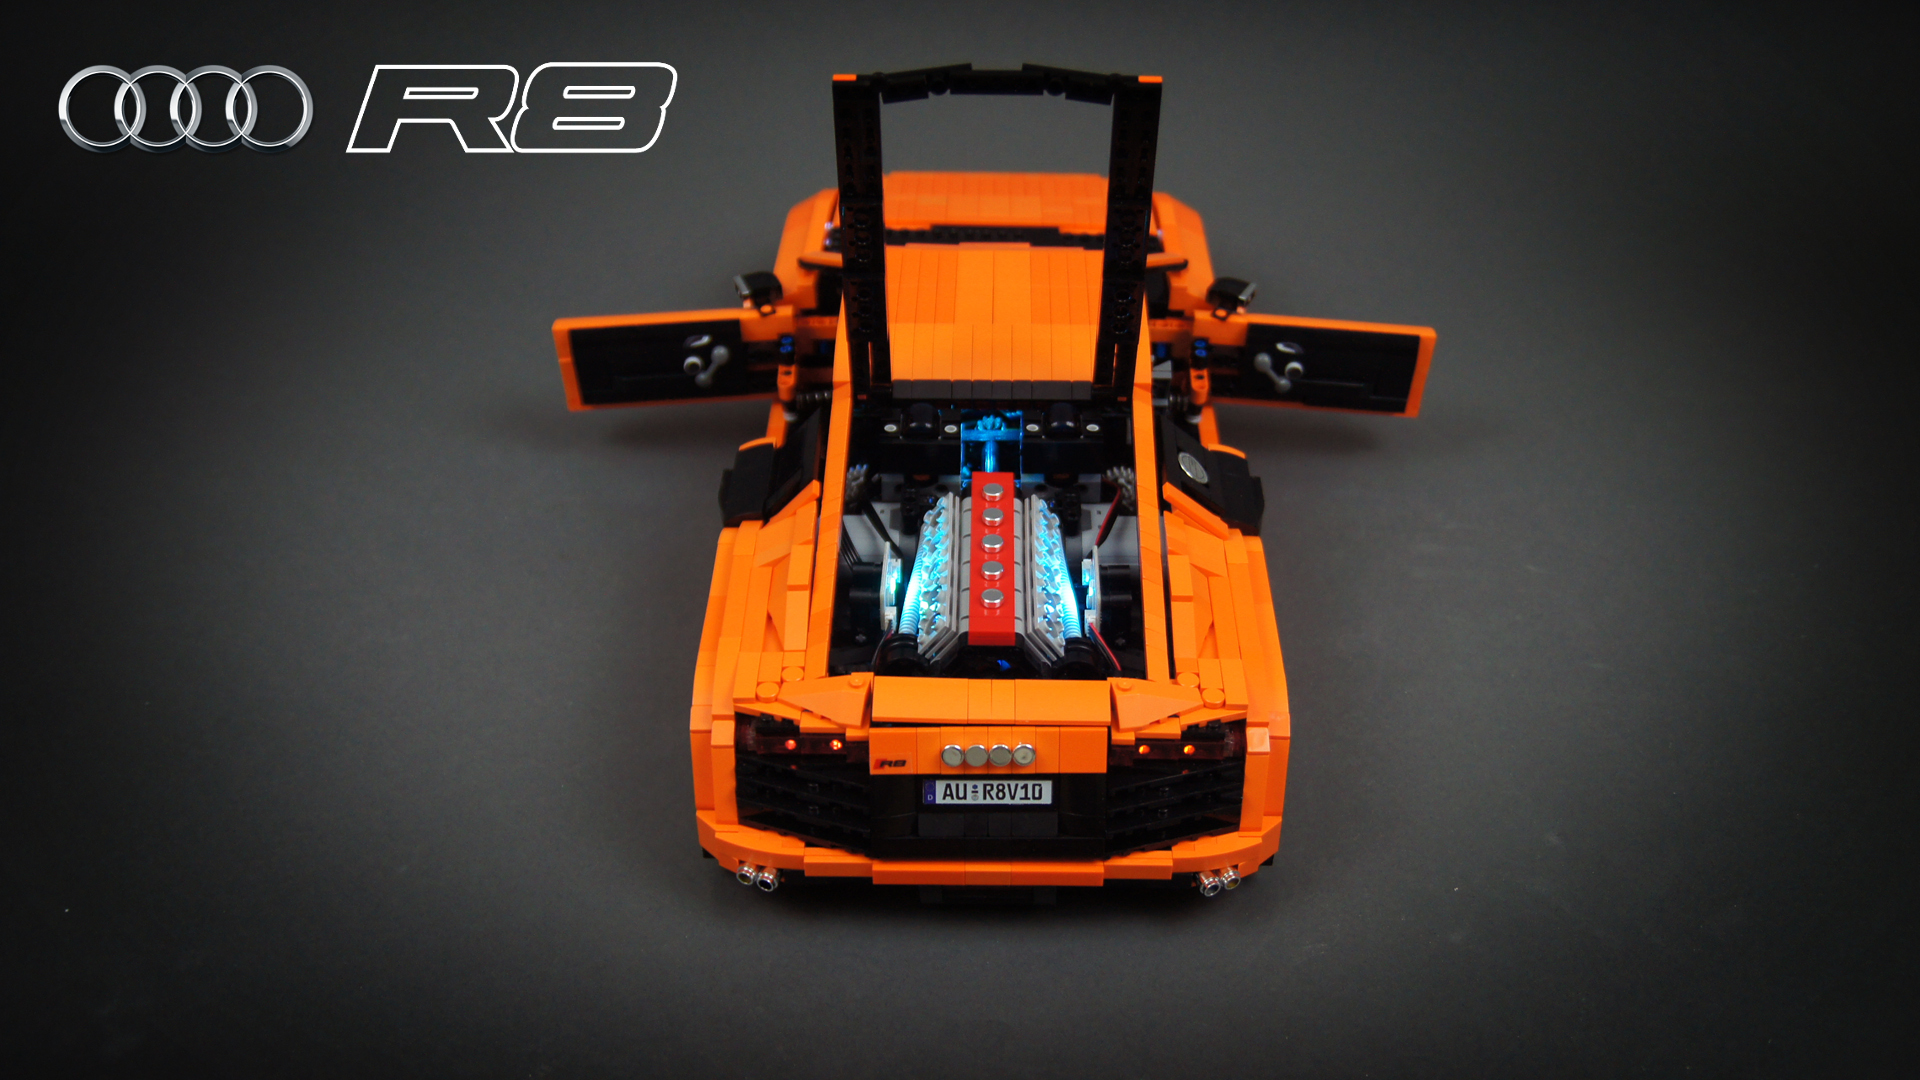 Build An Audi >> Audi R8 V10 - LEGO Technic, Mindstorms & Model Team - Eurobricks Forums